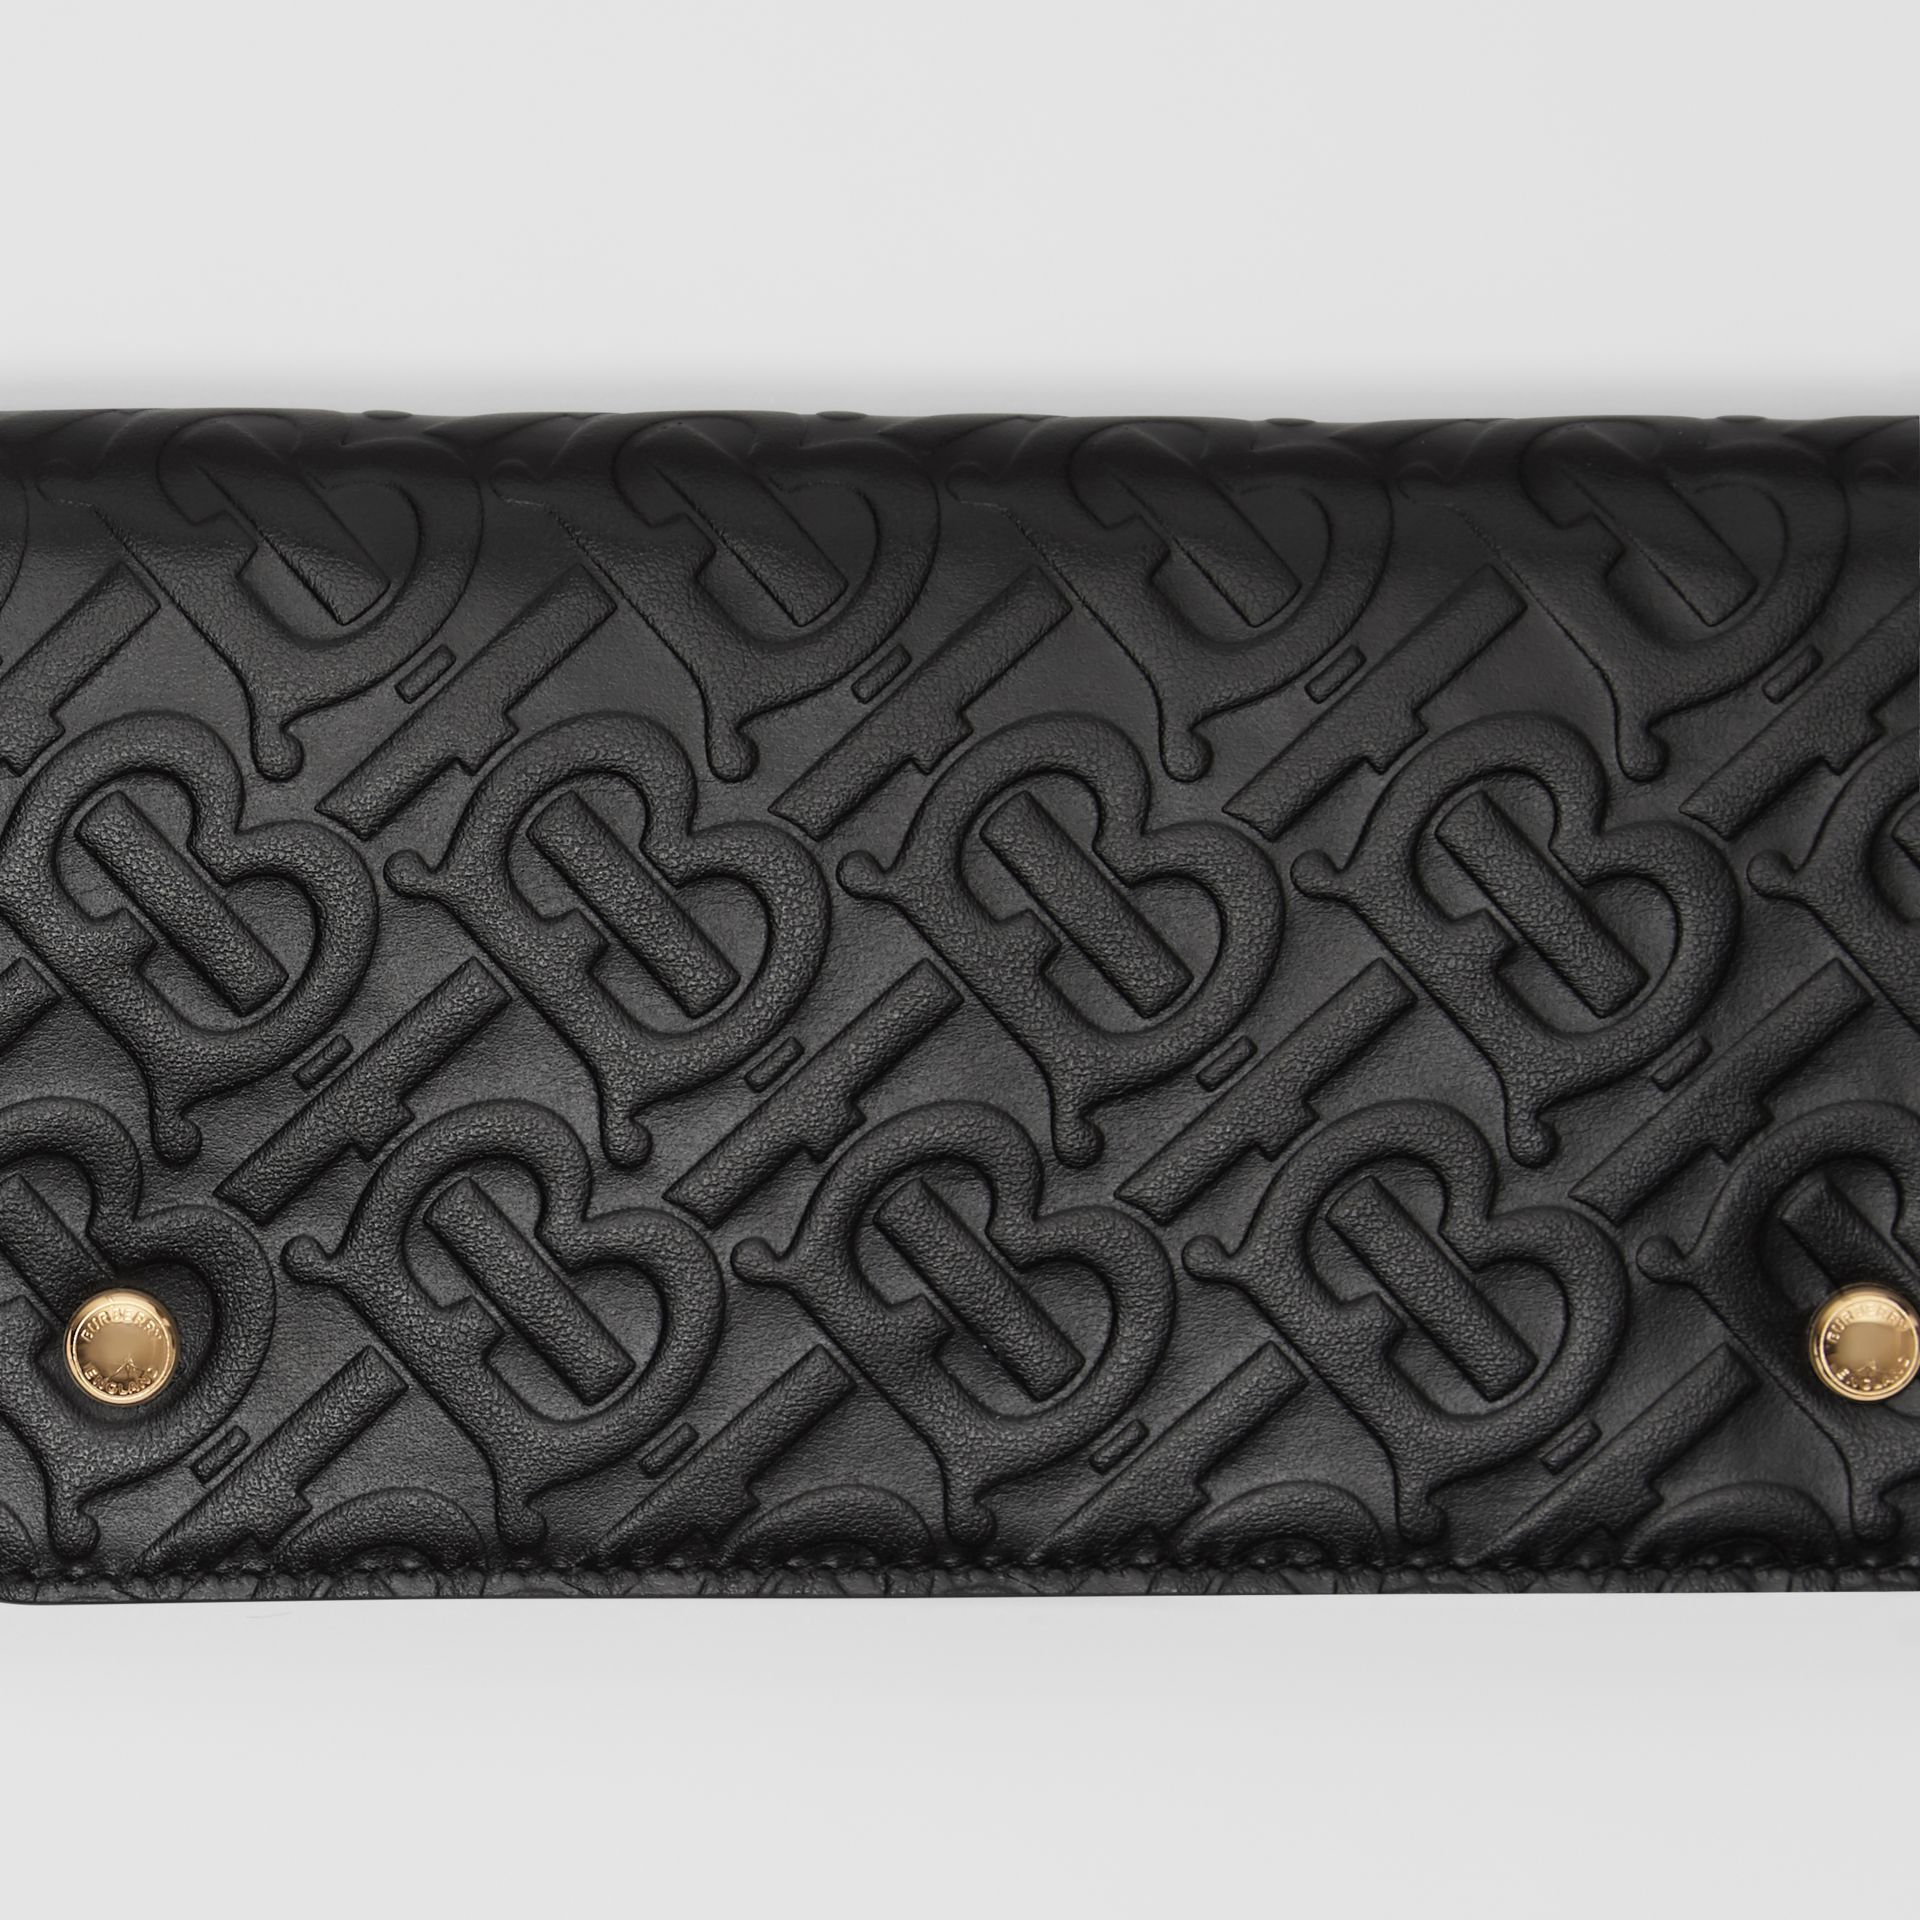 Monogram Leather Phone Wallet in Black - Women | Burberry - gallery image 1